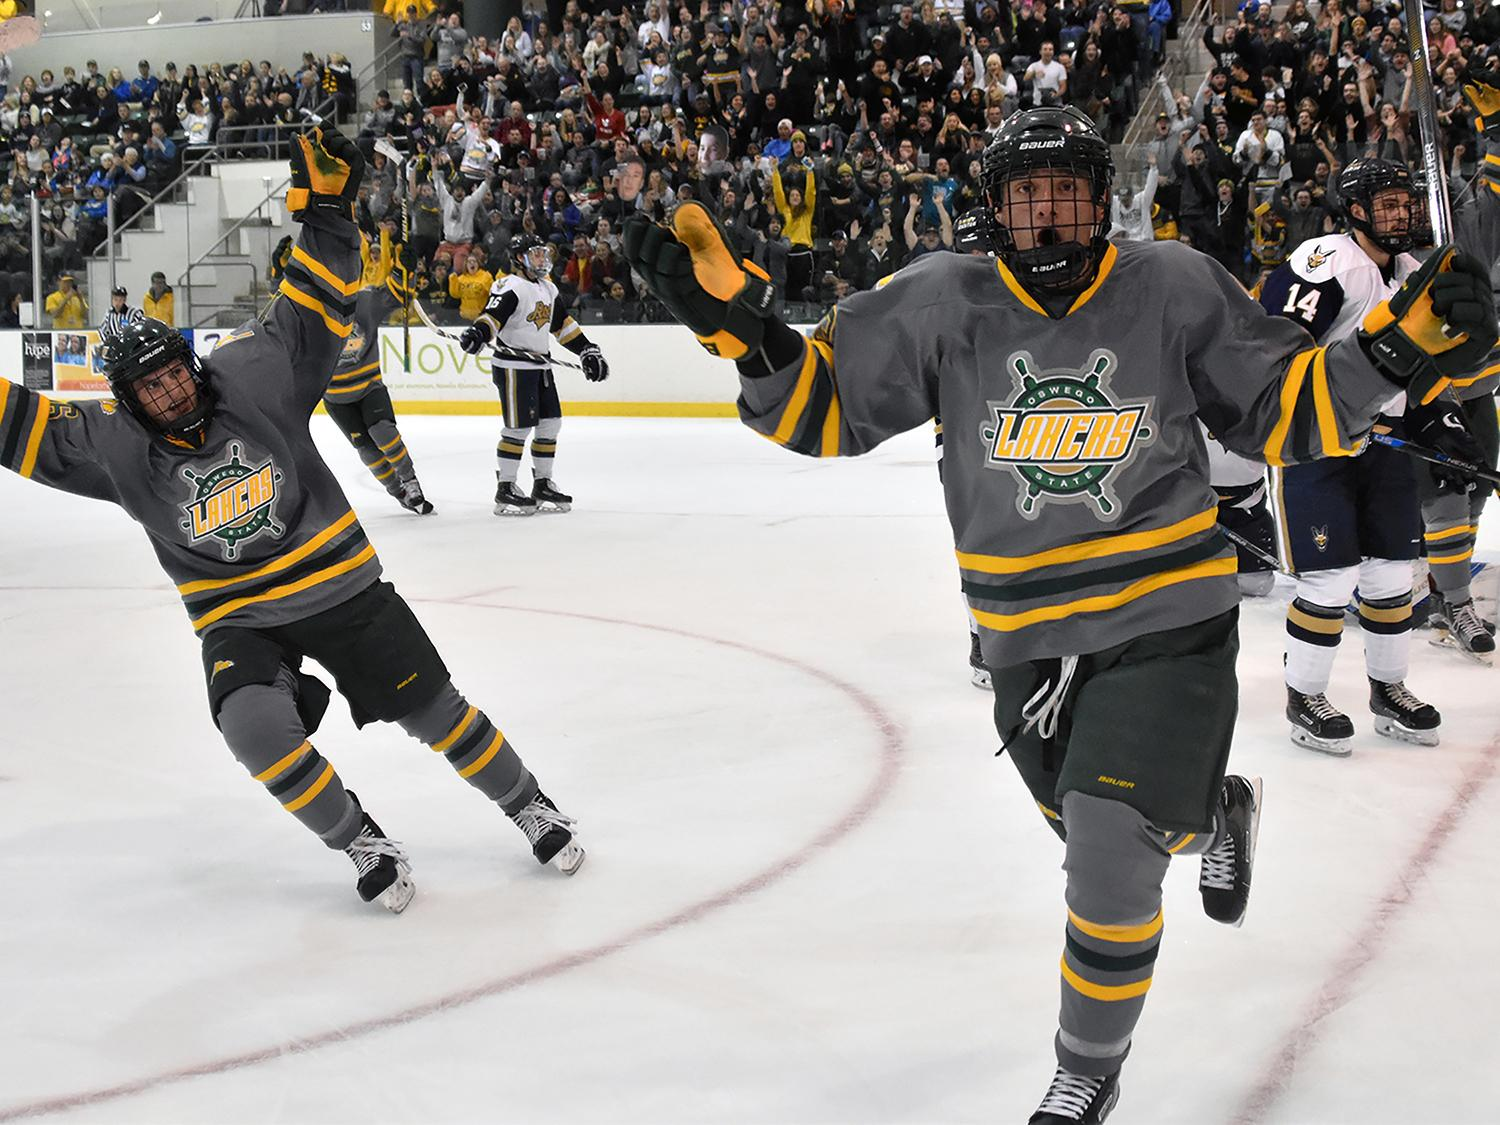 Laker men's hockey players celebrate a goal